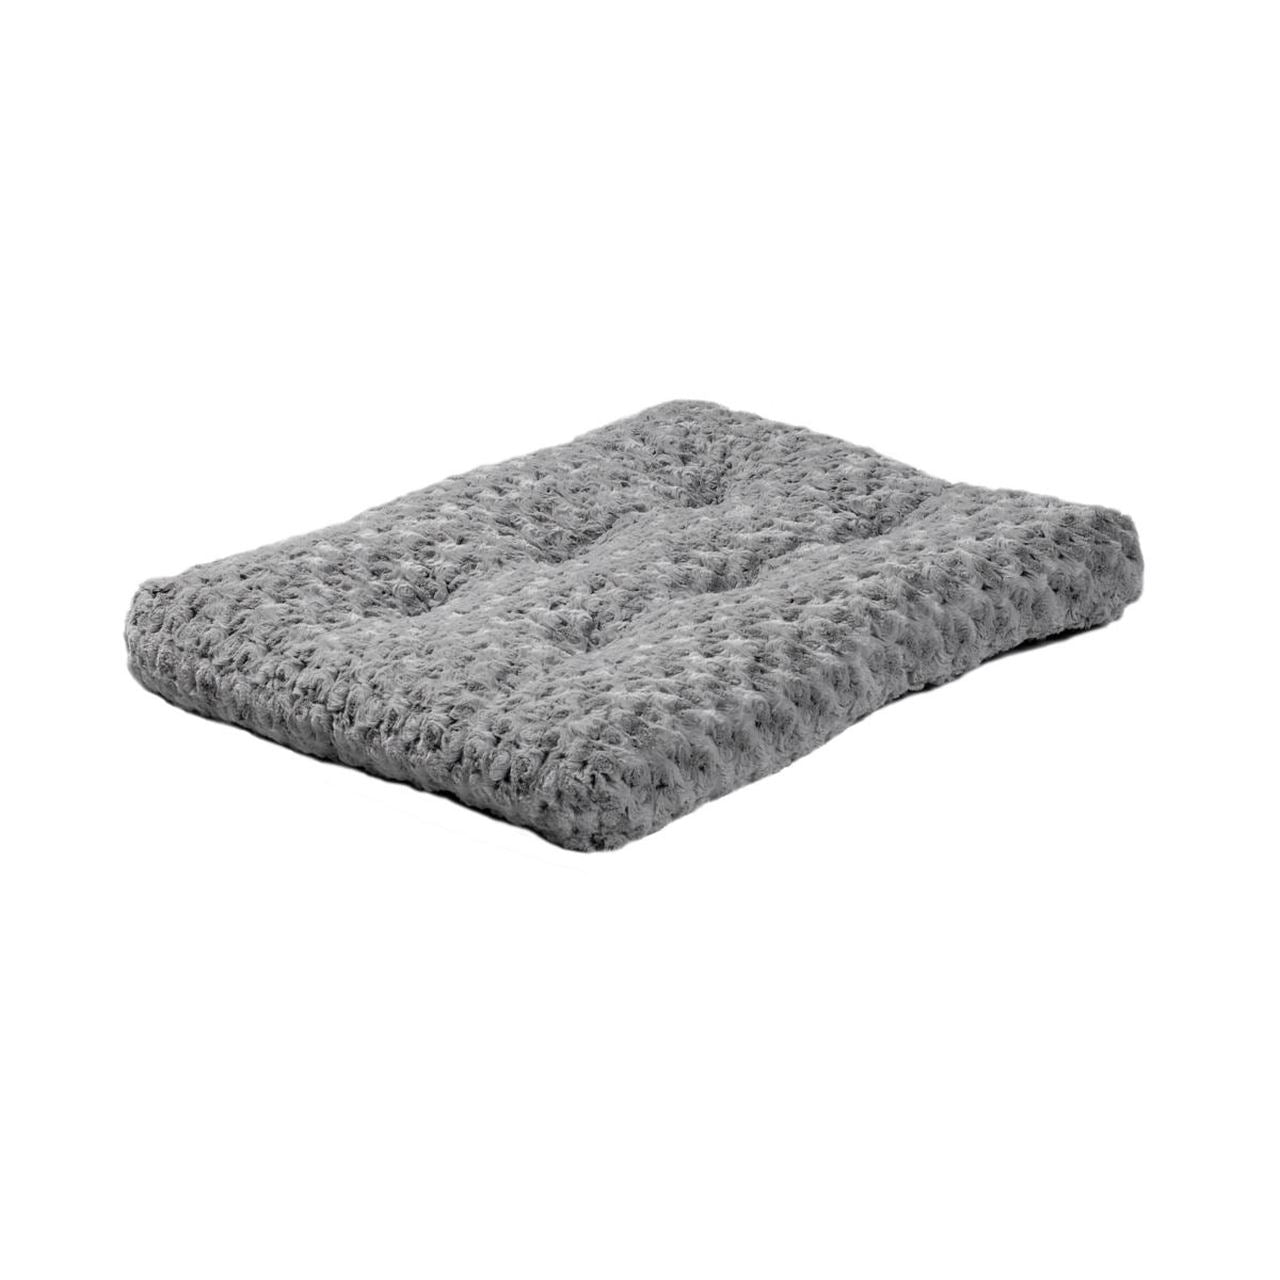 Quiet Time Deluxe Ombre Swirl Pet Bed 24""